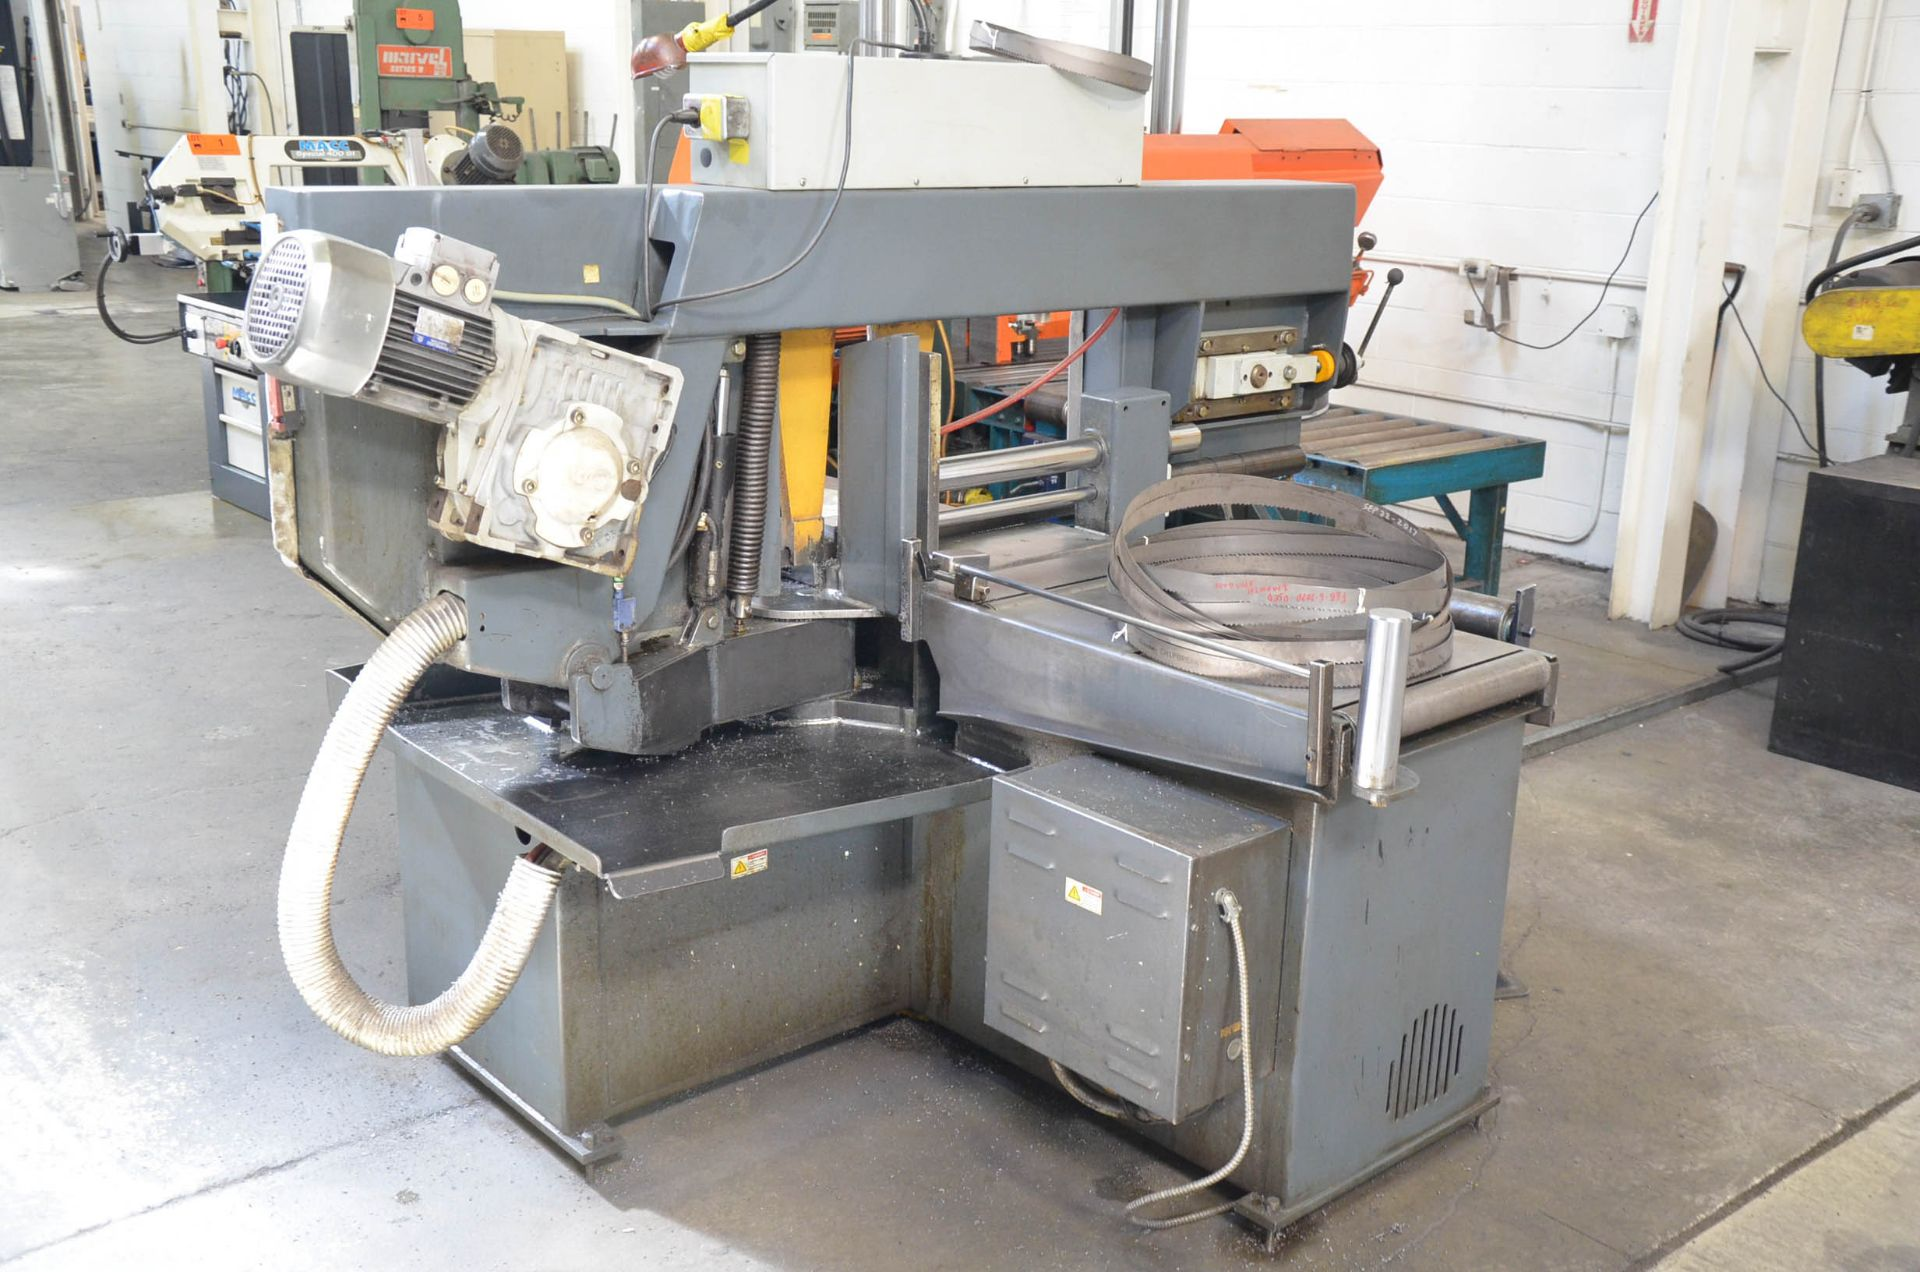 """HYD-MECH S-23 HORIZONTAL BAND SAW WITH 20"""" CAPACITY, HYDRAULIC VISE, COOLANT, CHIP AUGER, 600V/3PH/ - Image 4 of 8"""